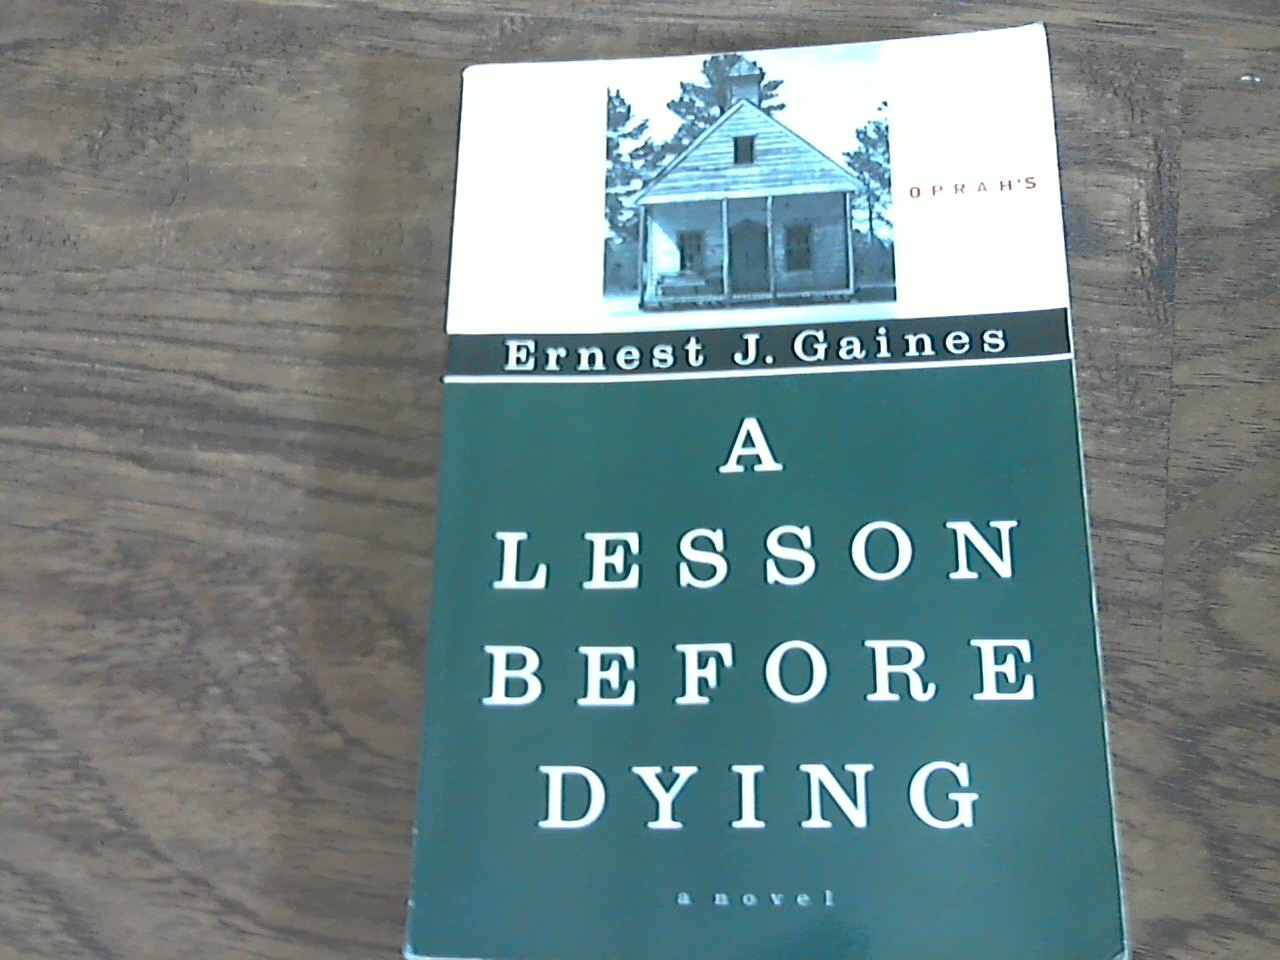 an analysis of a lesson before dying by ernest j gaines Ernest james gaines was born january 15, 1933, on river lake plantation in oscar, a small town in pointe coupee parish, near new roads, louisiana the oldest of.